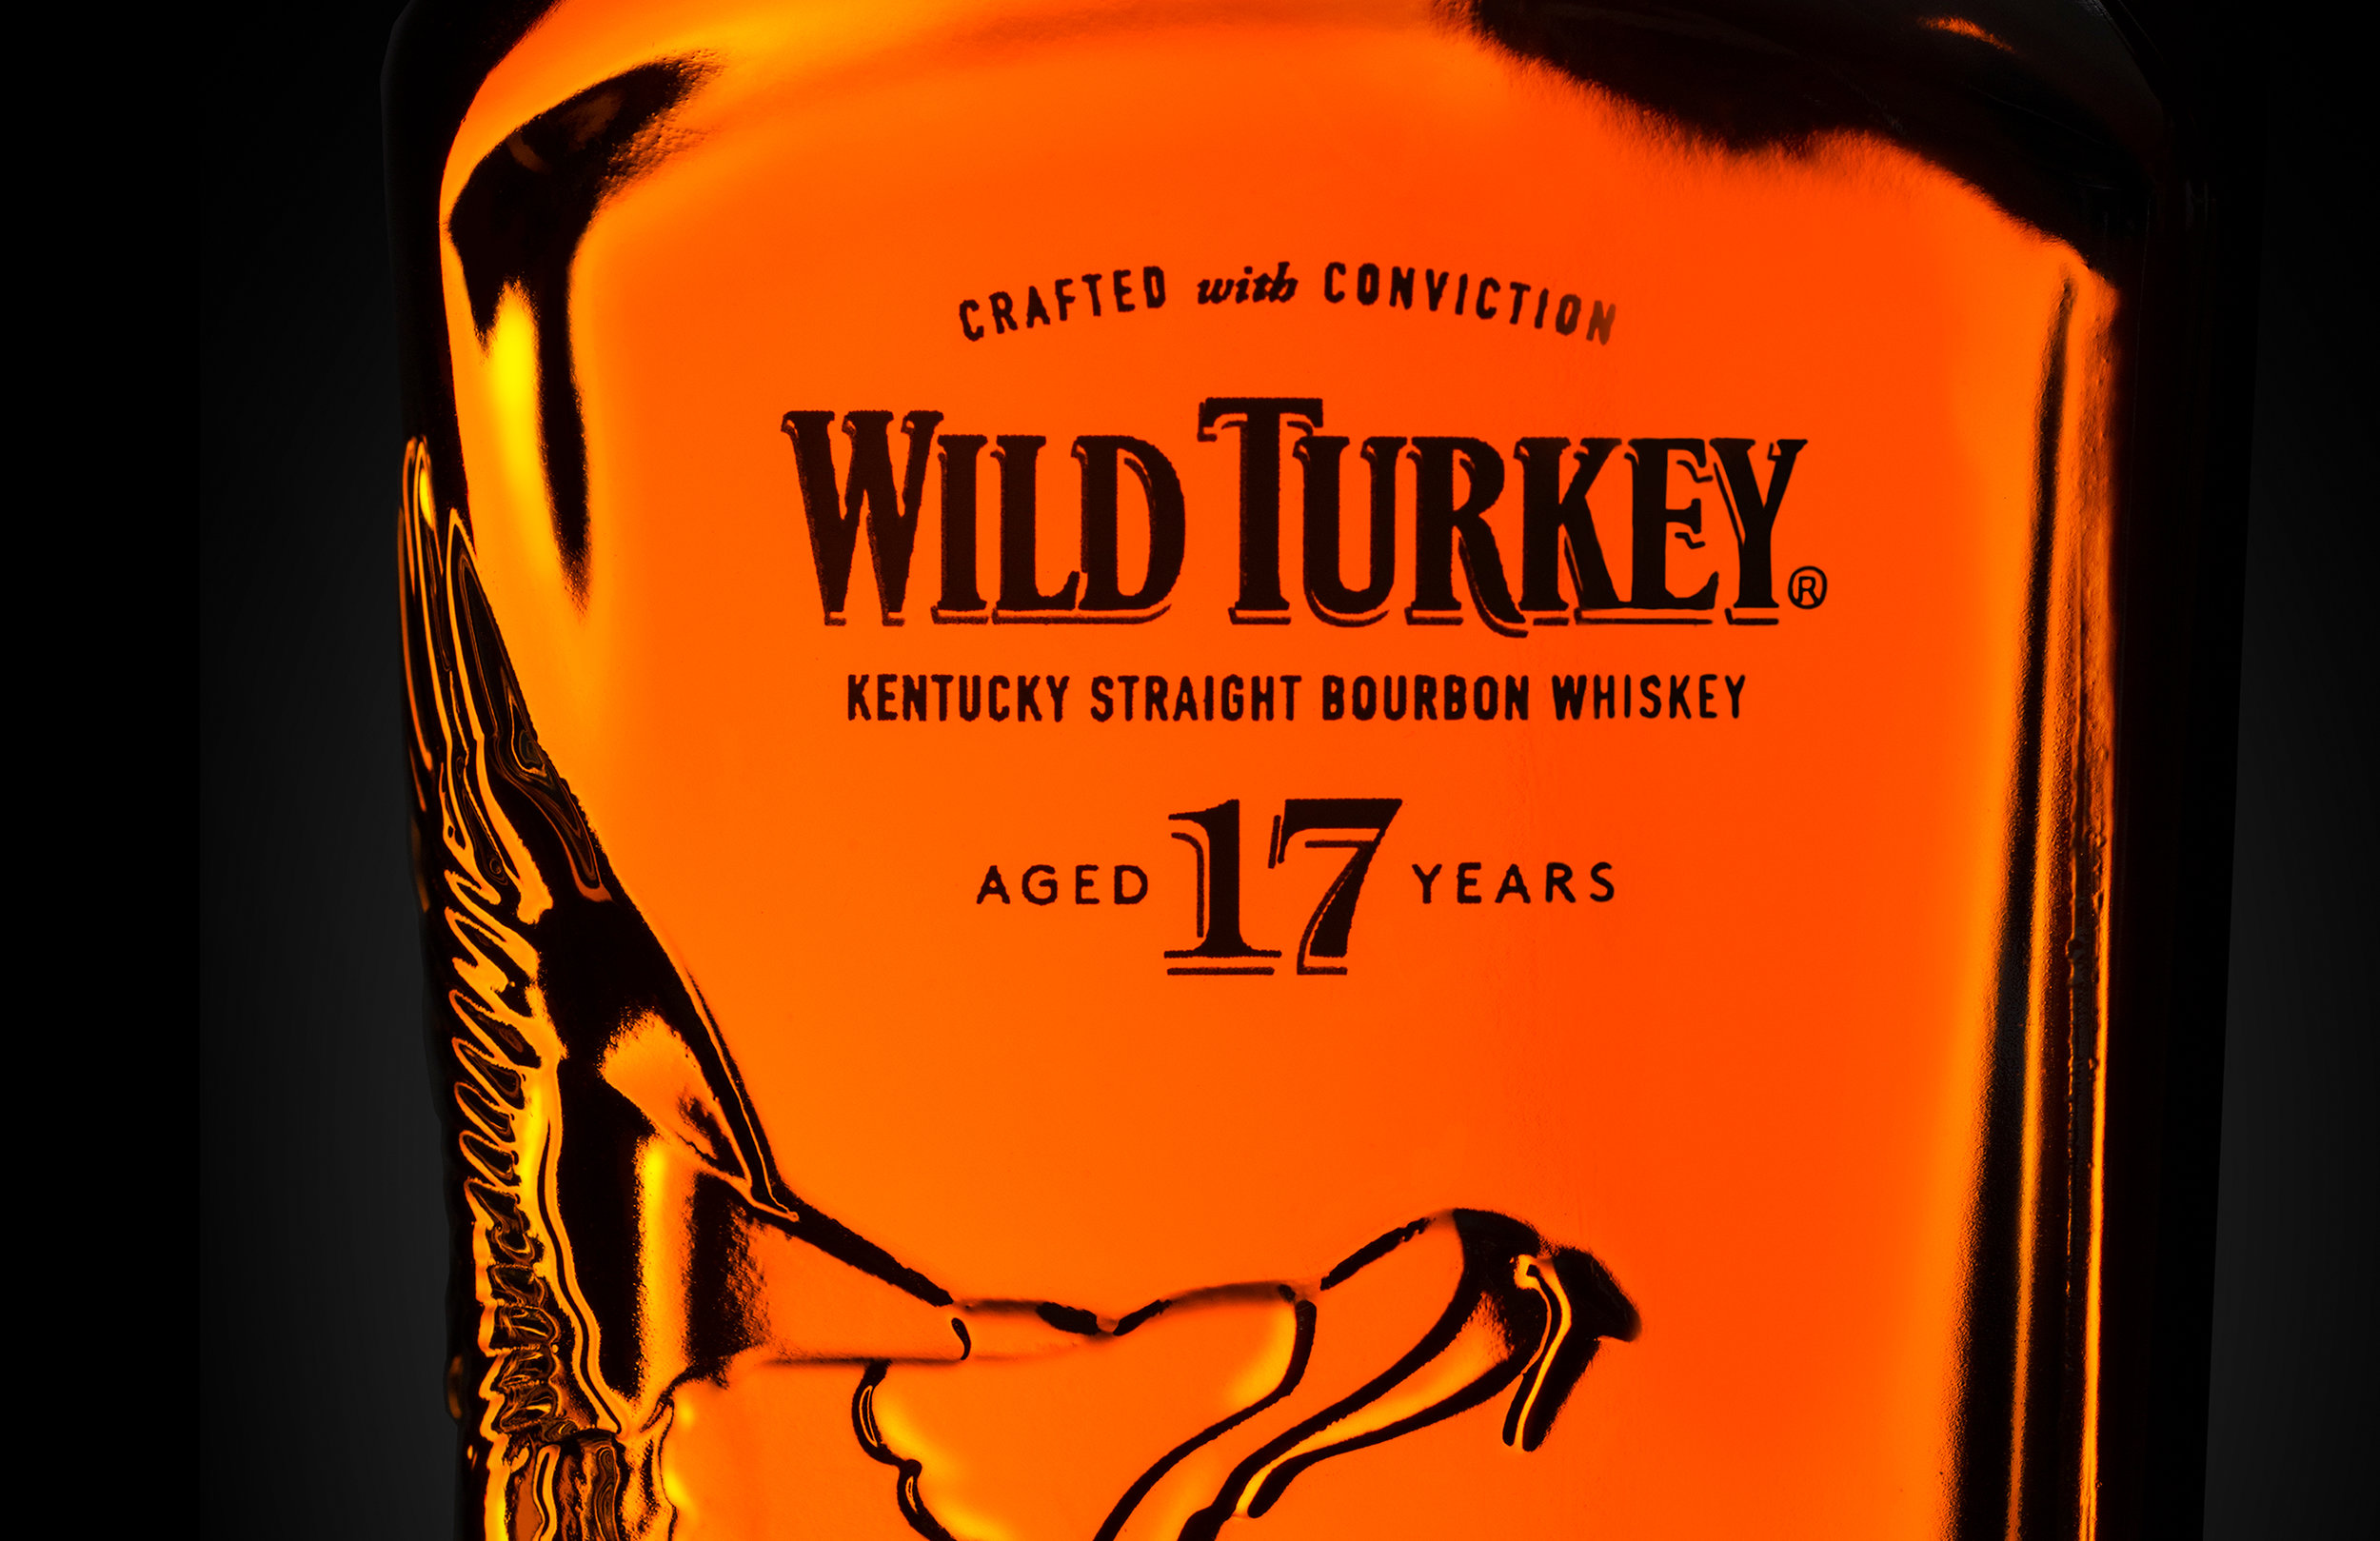 LV_WildTurkey_Icon.jpg